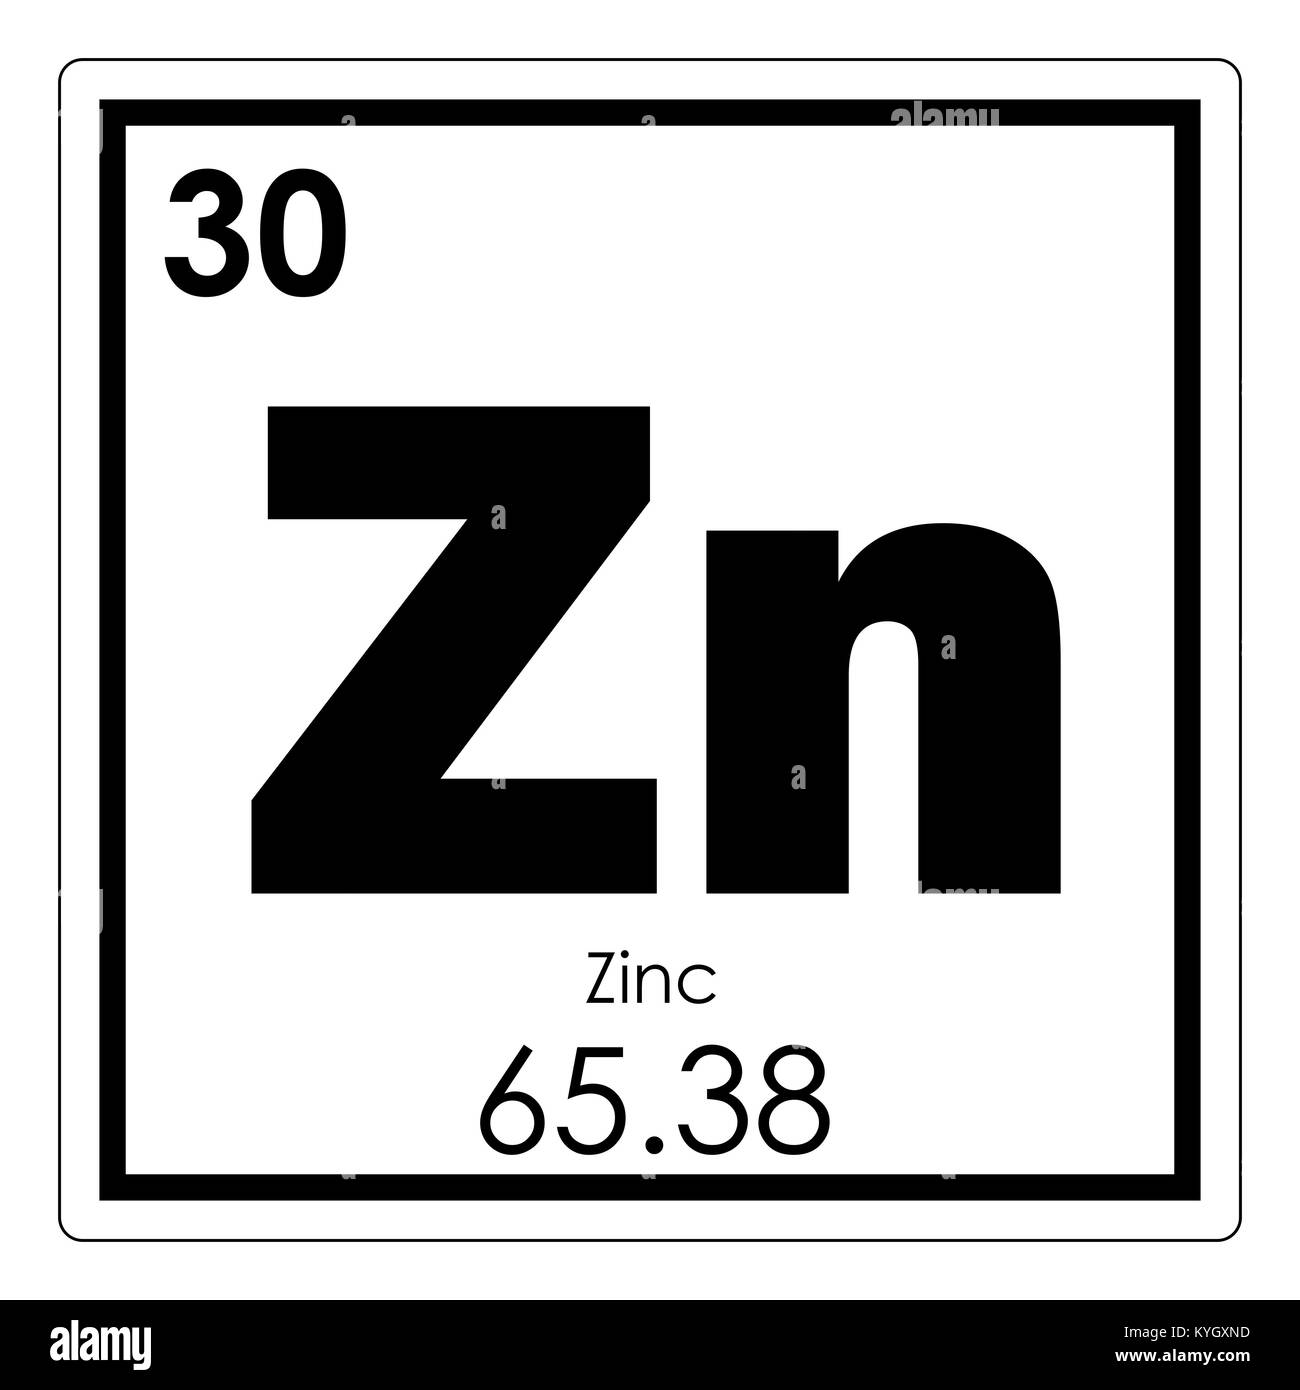 Zinc chemical element periodic table science symbol stock photo zinc chemical element periodic table science symbol buycottarizona Images